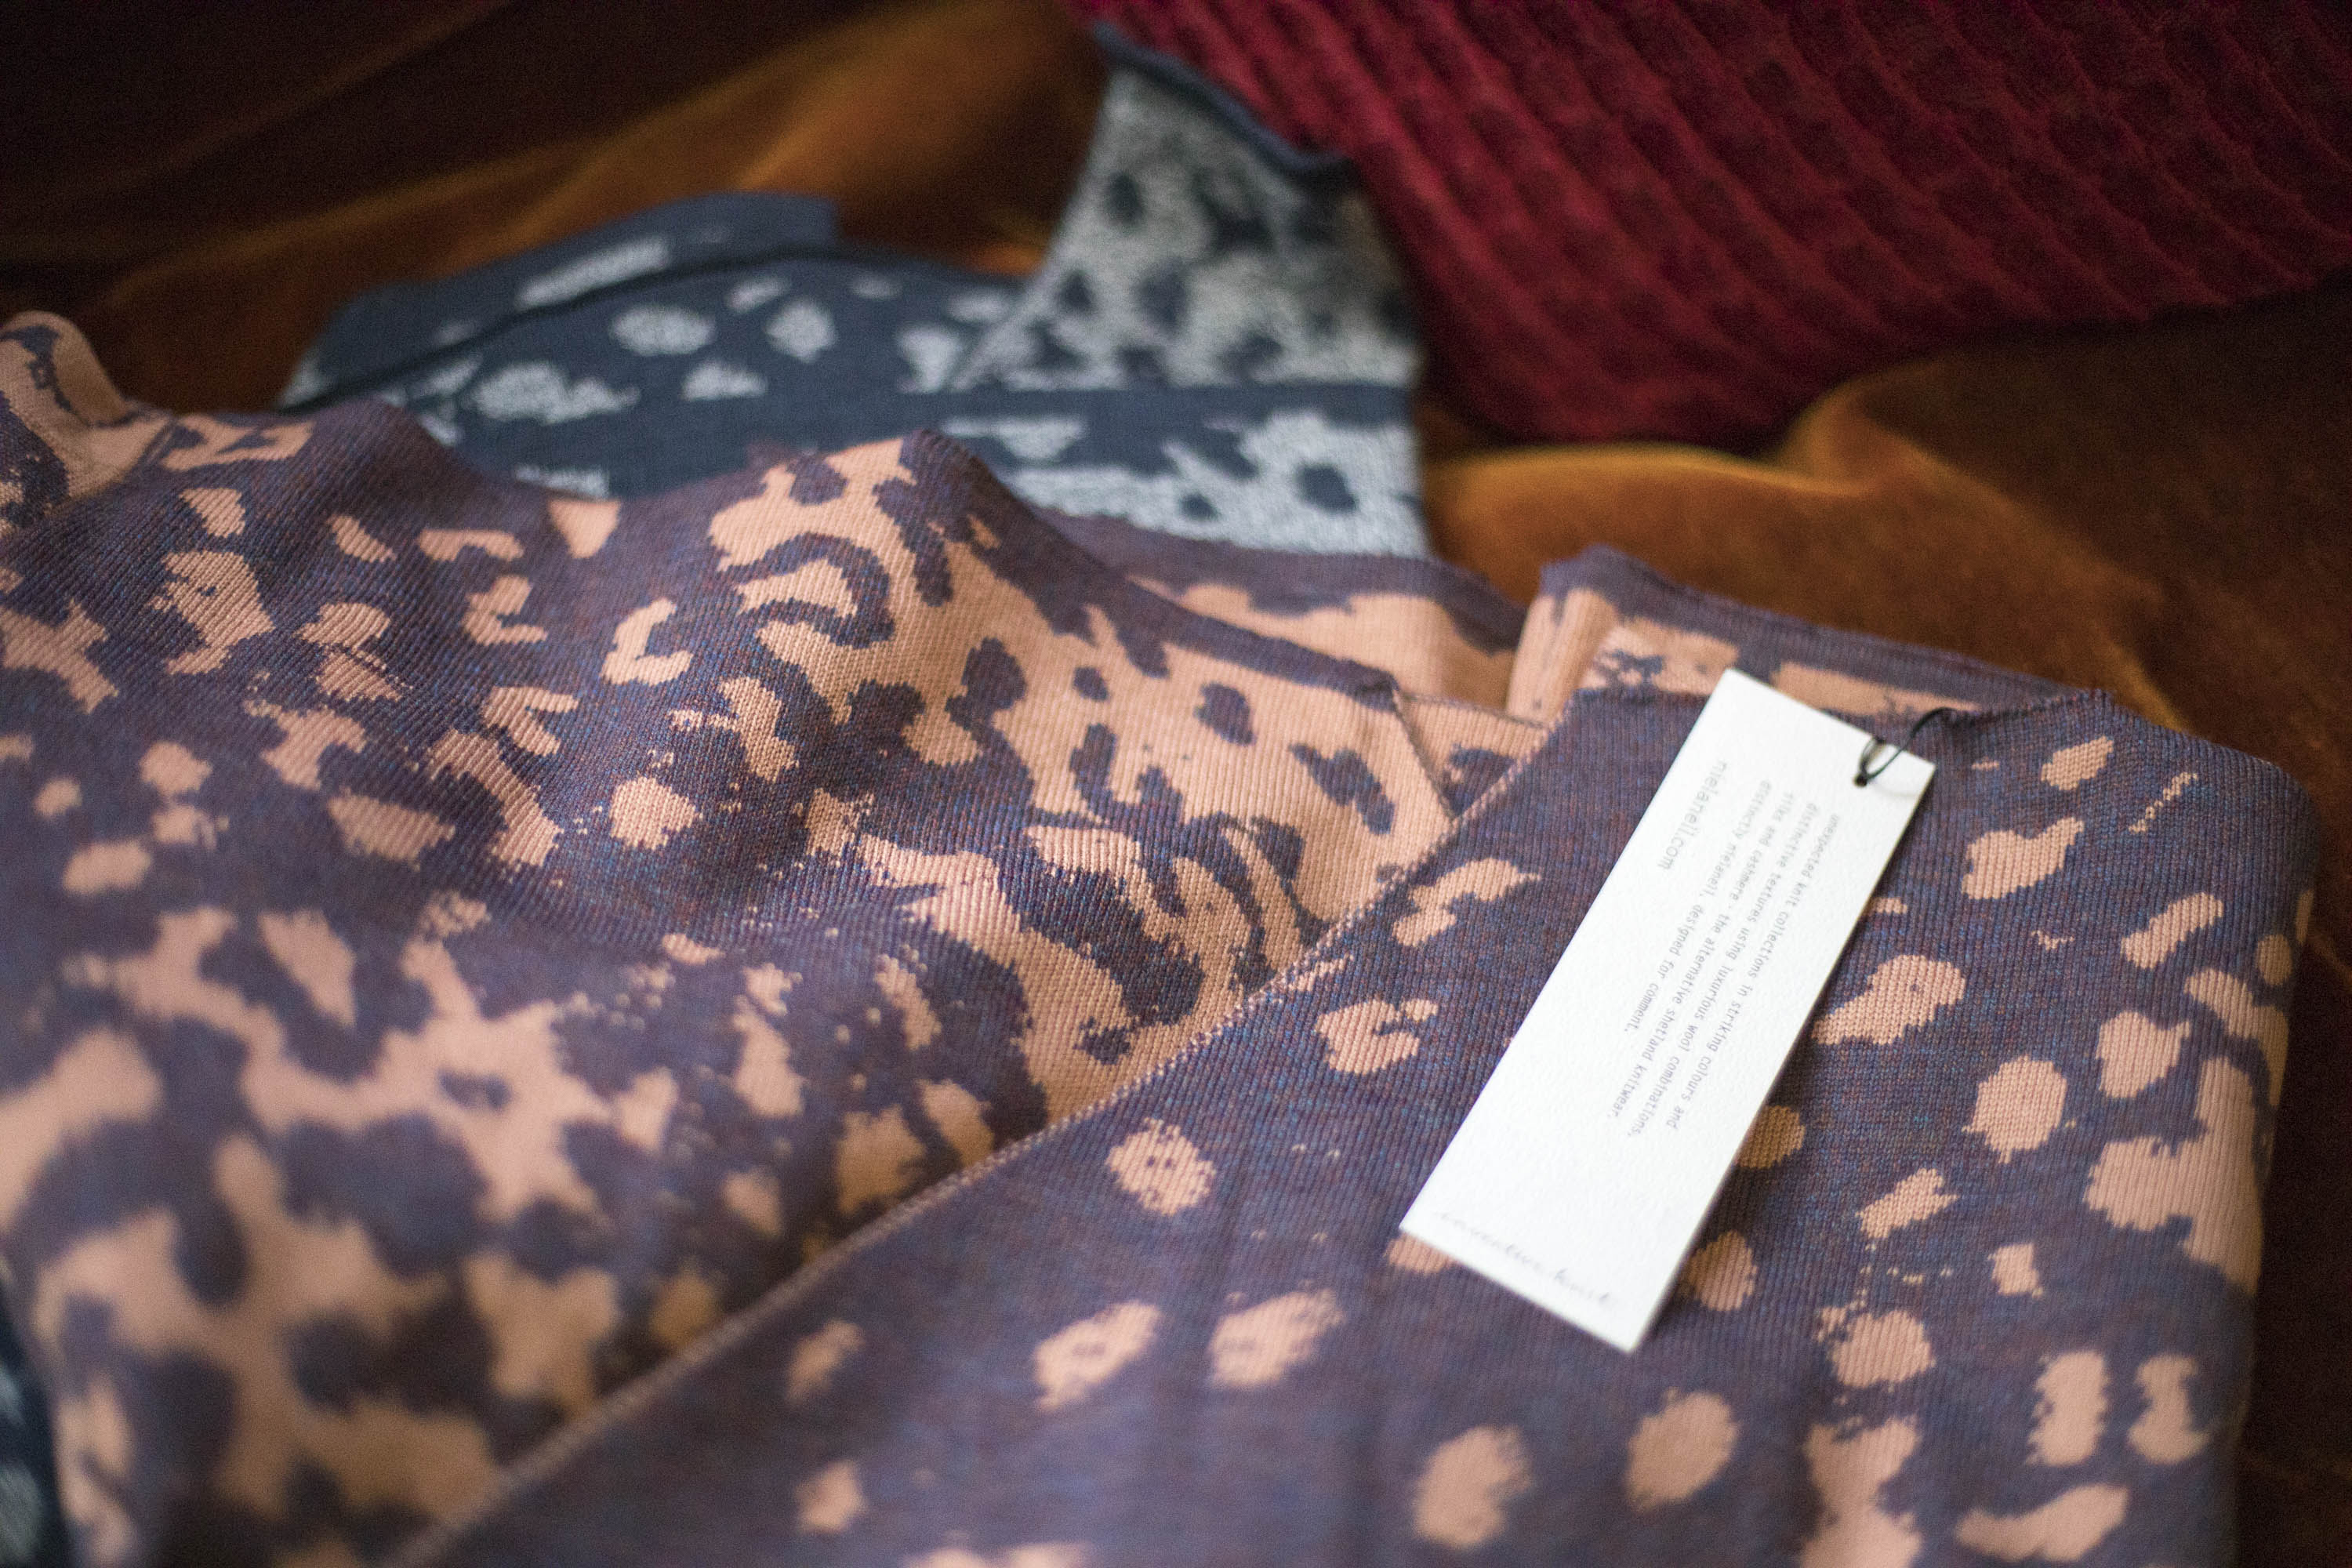 Two fine knit Marlet shawls in the Nielanell studio, Hoswick, Shetland. Abstract mottled pattern in coral and blues